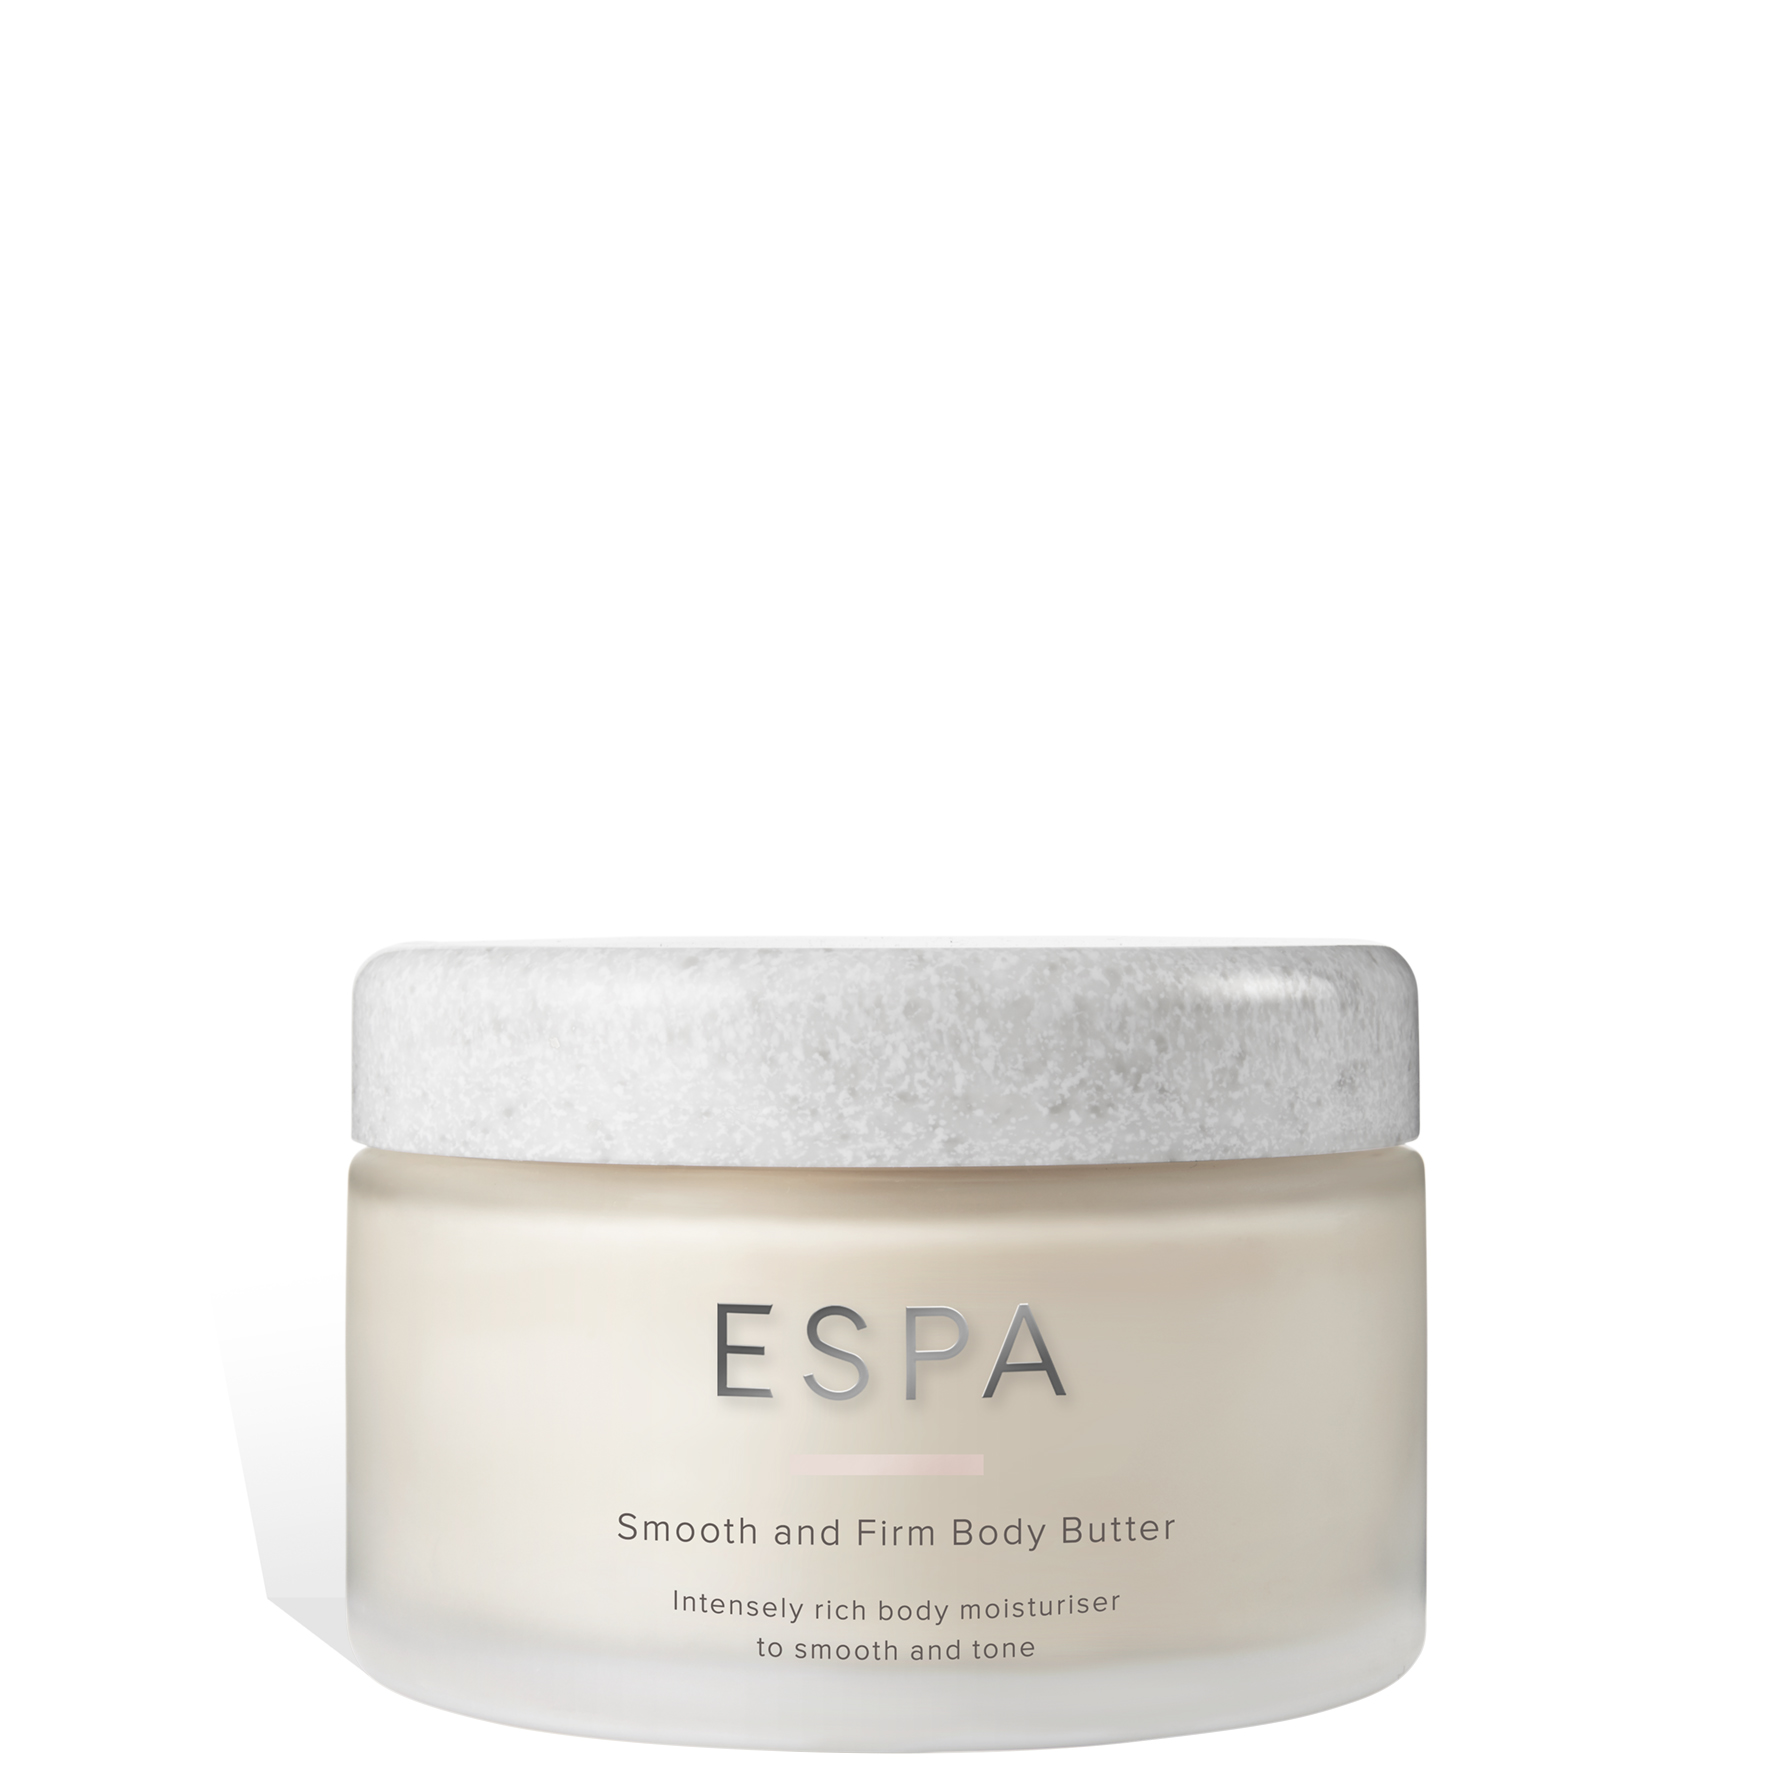 ESPA Smooth and Firm Body Butter